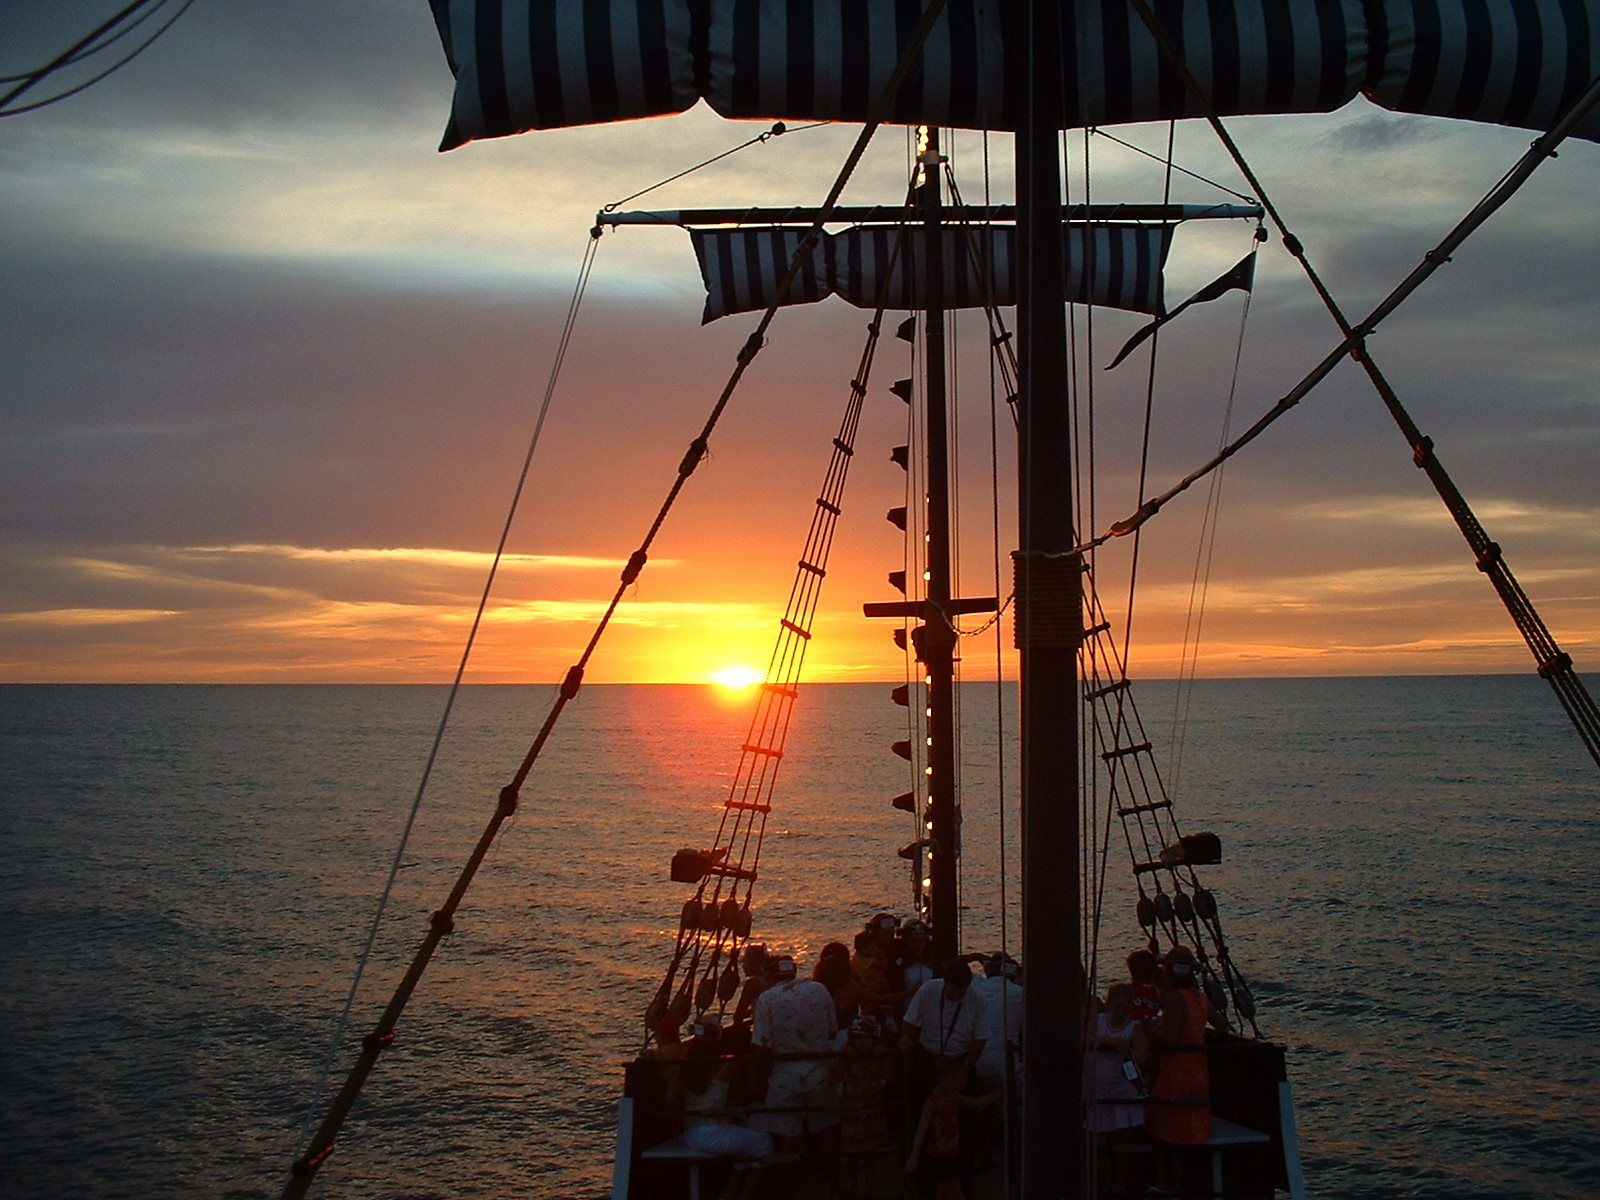 Sunset on Pirate Ship